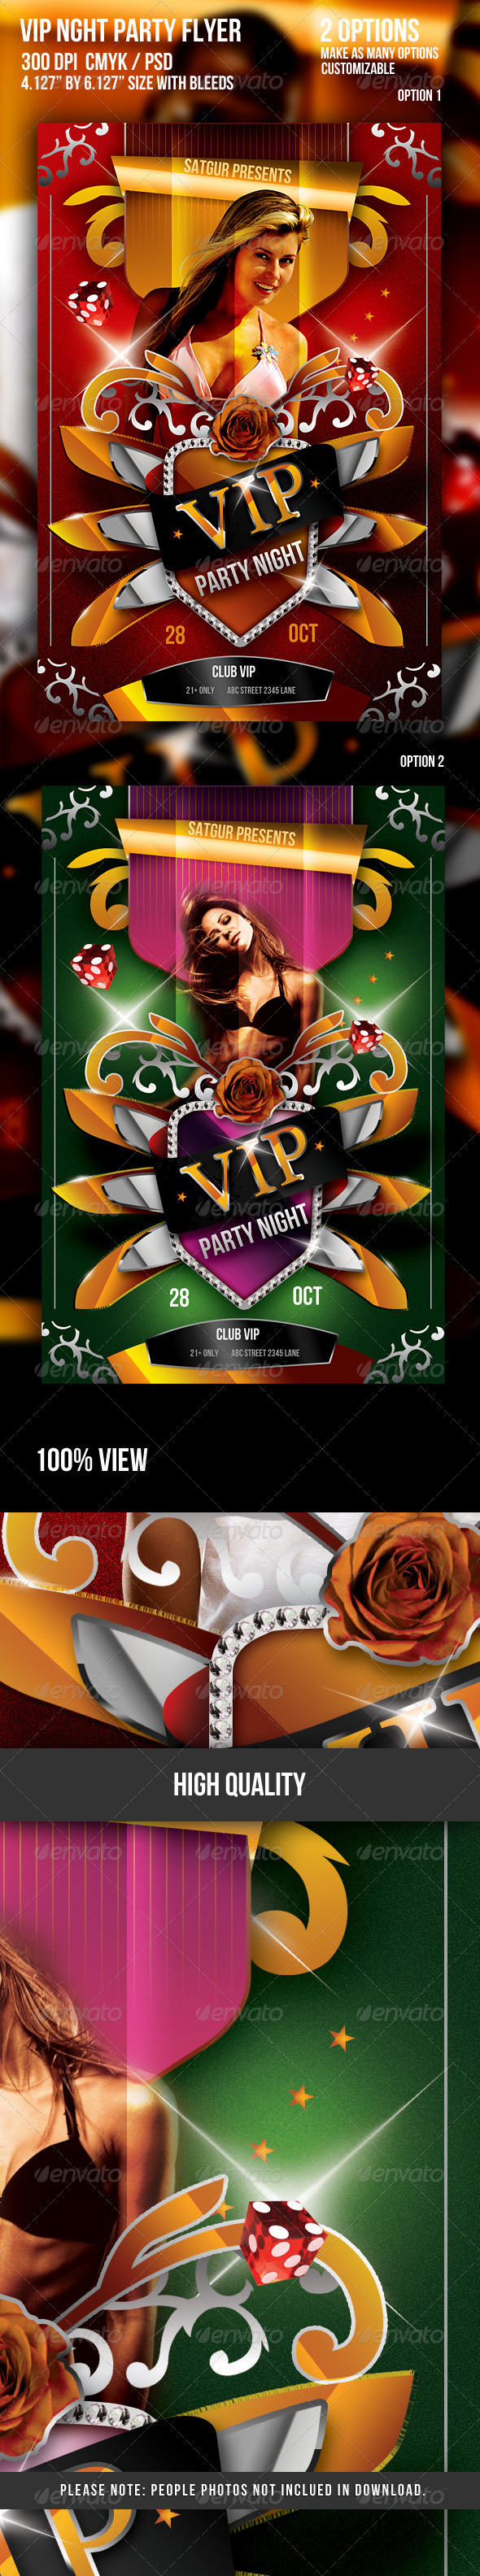 VIP Music Party Night Flyer - V2 - Clubs & Parties Events